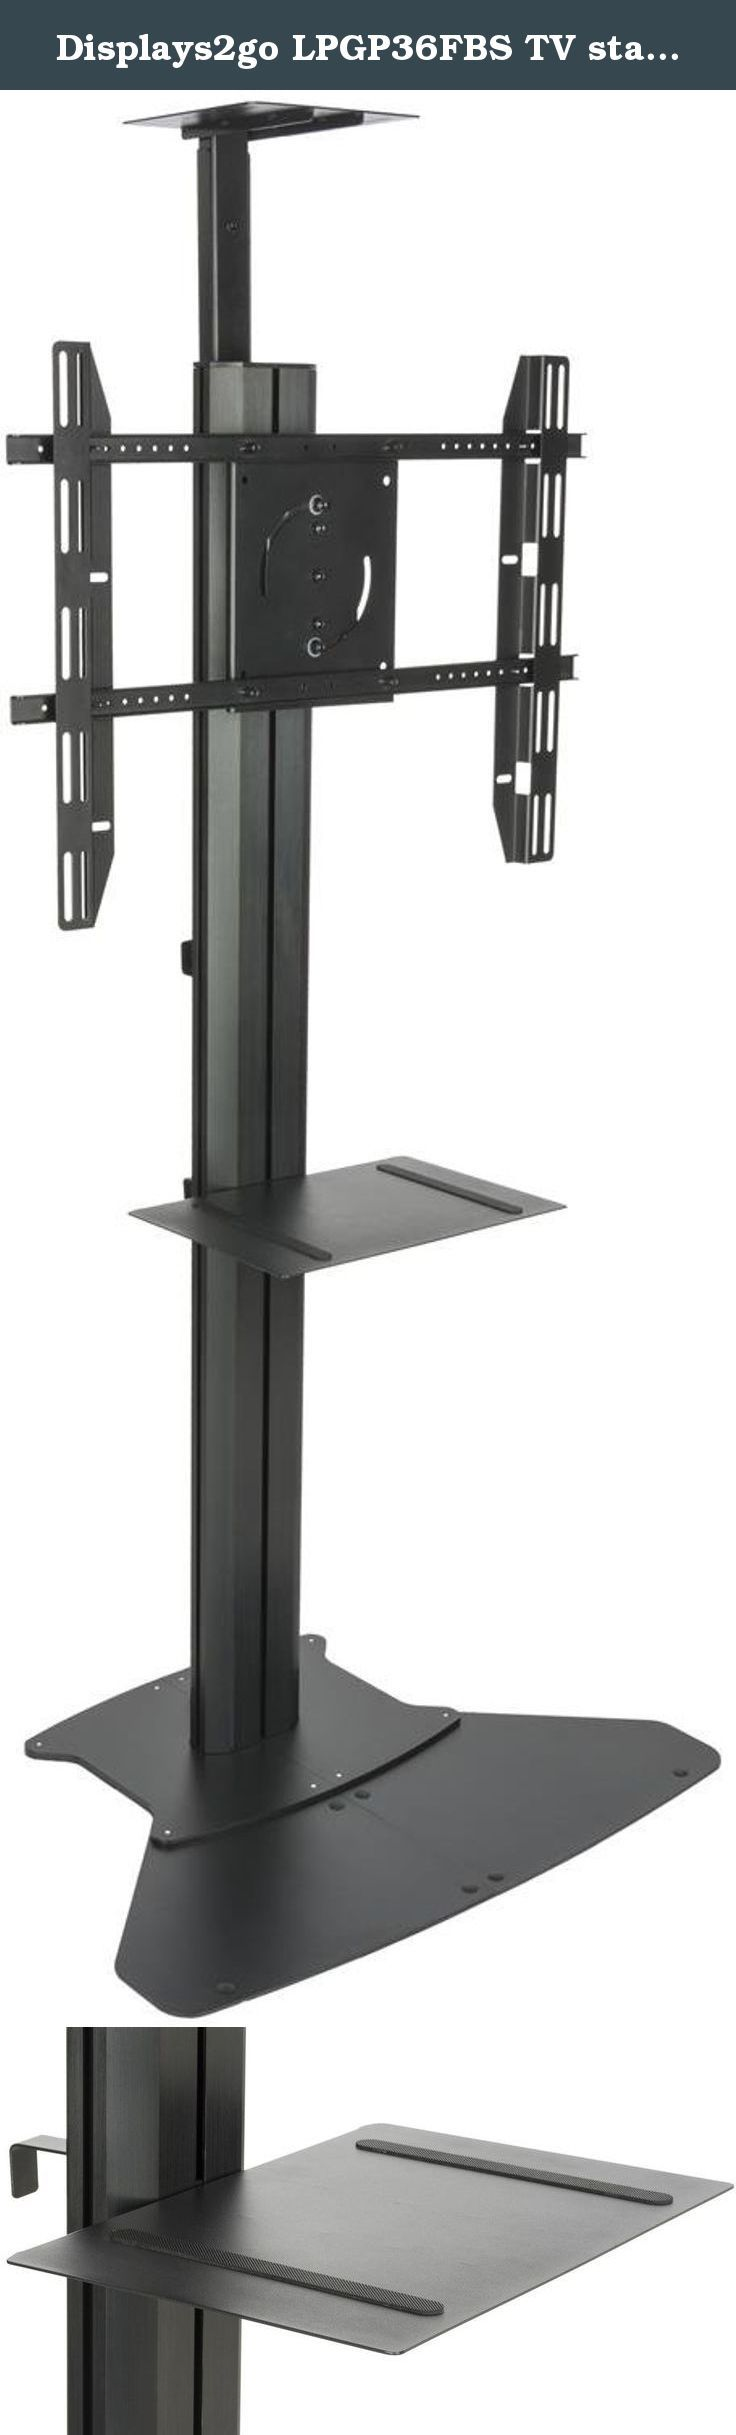 """Displays2go LPGP36FBS TV stand with Camera Tray and Shelf, Holds 30-84"""", Fixed Display, VESA Mount. This TV stand fits screens 30"""" to 84"""" weighing up to 220 lbs. Hardware is included to bolt the stand to the ground. Cable management is efficient with a cord winder and integrated outlet strip located on the back of the stand. The stand has a shelf for audio video equipment capable of holding 44 lbs. The bracket permits landscape or portrait orientation of the screen. The stand is VESA..."""